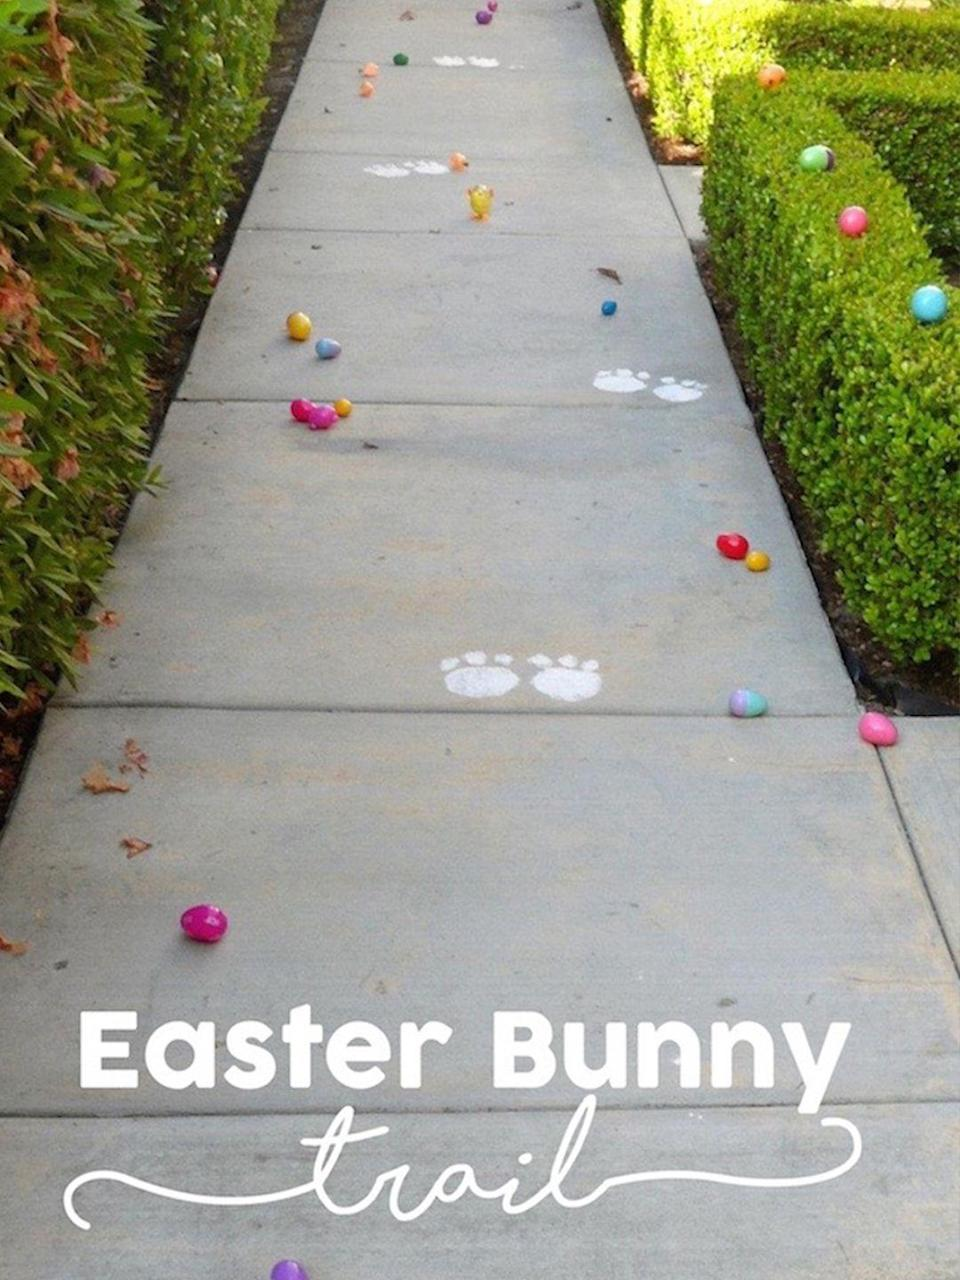 "<p>Send your little chicks following in the Easter Bunny's footsteps with this simple and adorable DIY project. </p><p><a href=""https://www.smartschoolhouse.com/diy-crafts/easter-bunny-trail/2"" rel=""nofollow noopener"" target=""_blank"" data-ylk=""slk:Get the tutorial at Smart School House »"" class=""link rapid-noclick-resp""><em>Get the tutorial at Smart School House »</em></a></p>"